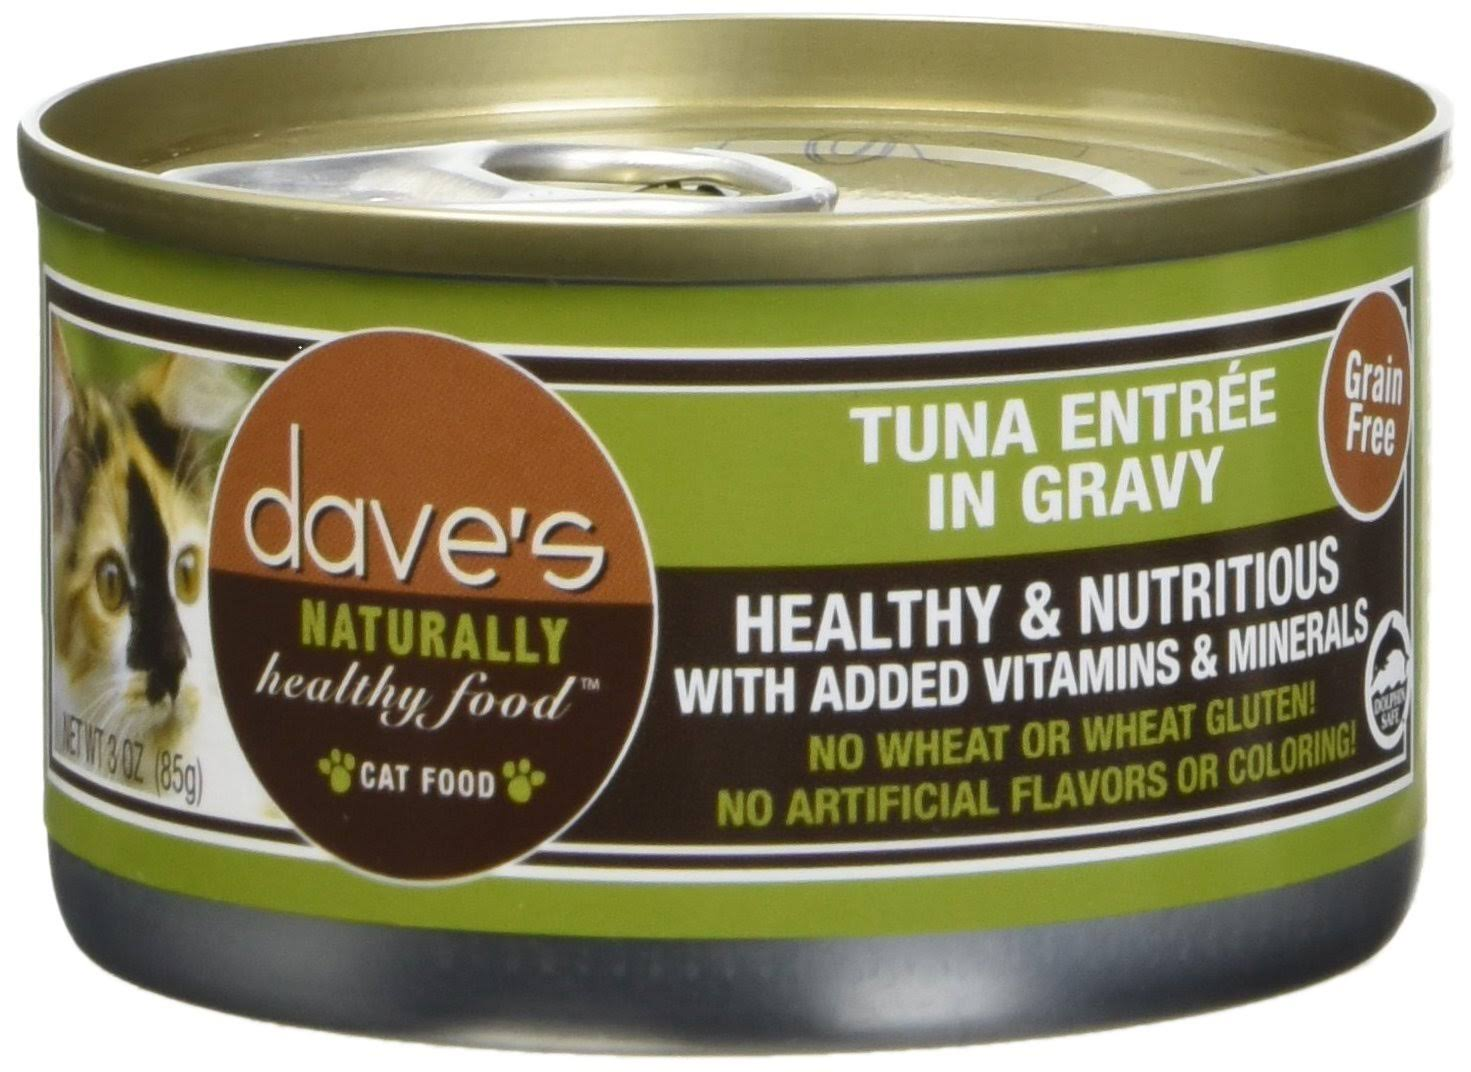 Dave's Naturally Healthy Canned Cat Food - Tuna Entrée In Gravy, 3oz